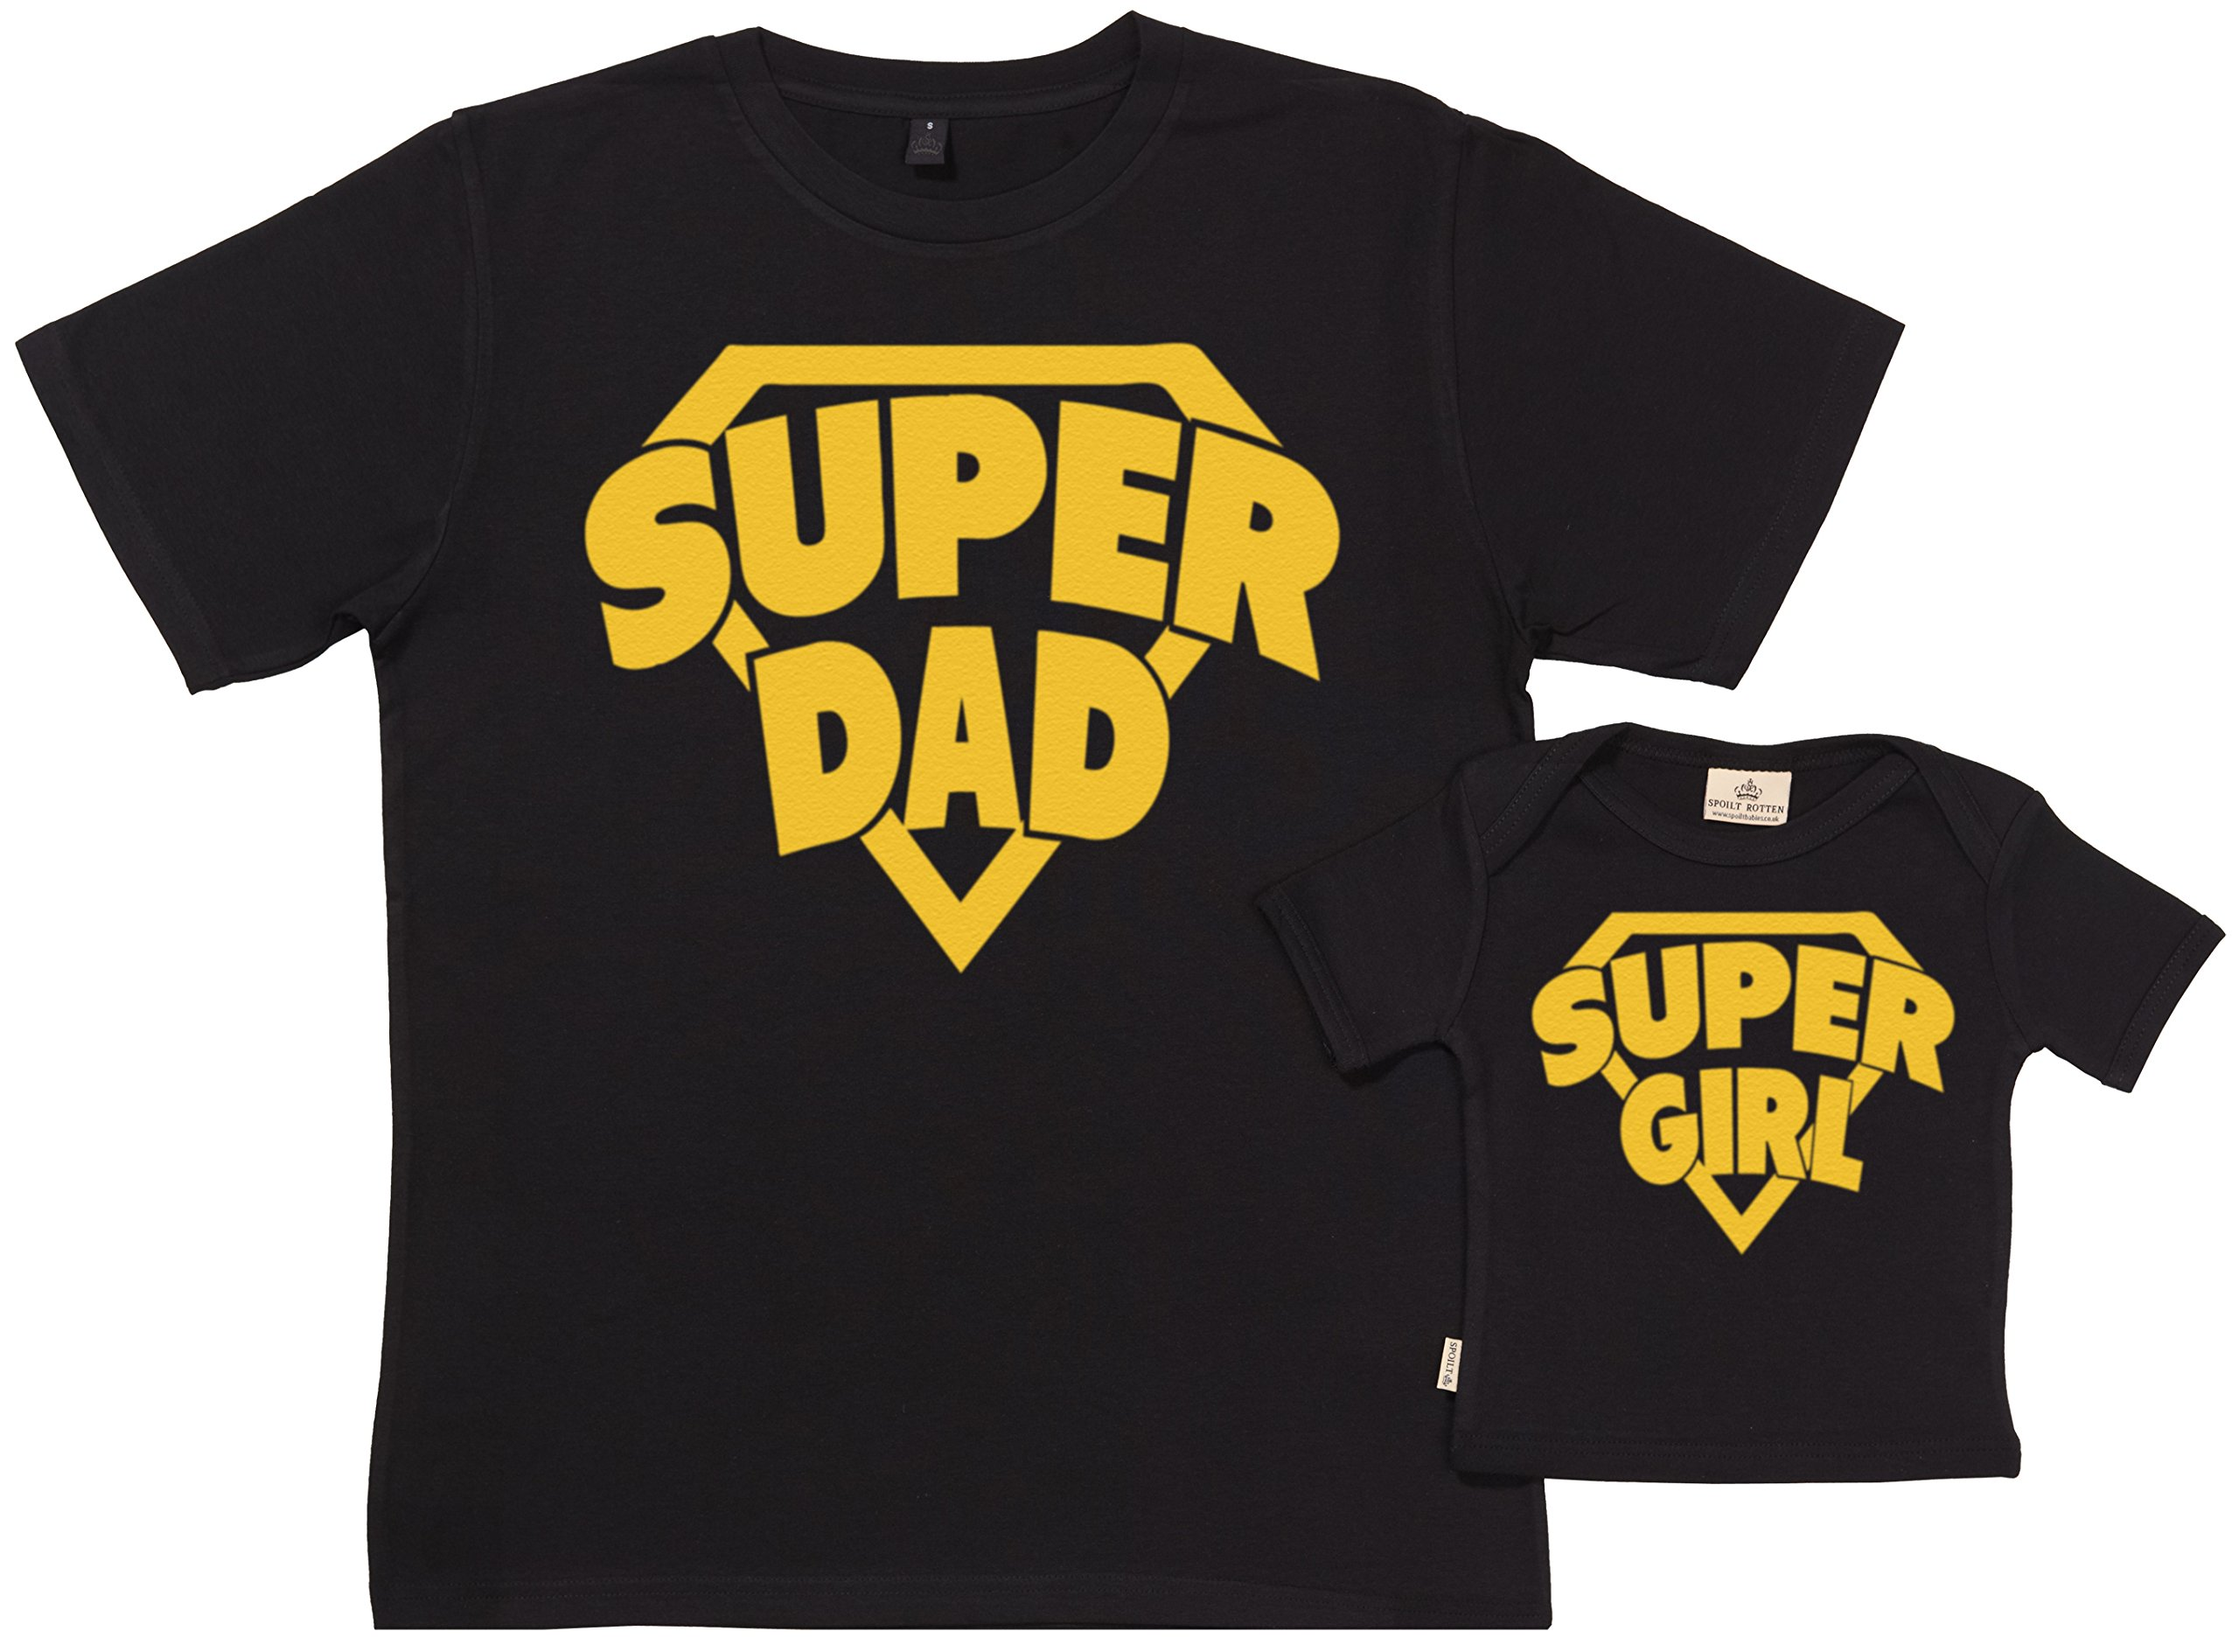 SR - Gift Boxed Dad & Kids Gift Set - Superdad Supergirl Organic Matching Father & Kids T-Shirts - Black - XX-Large & 5-6 Years by Spoilt Rotten